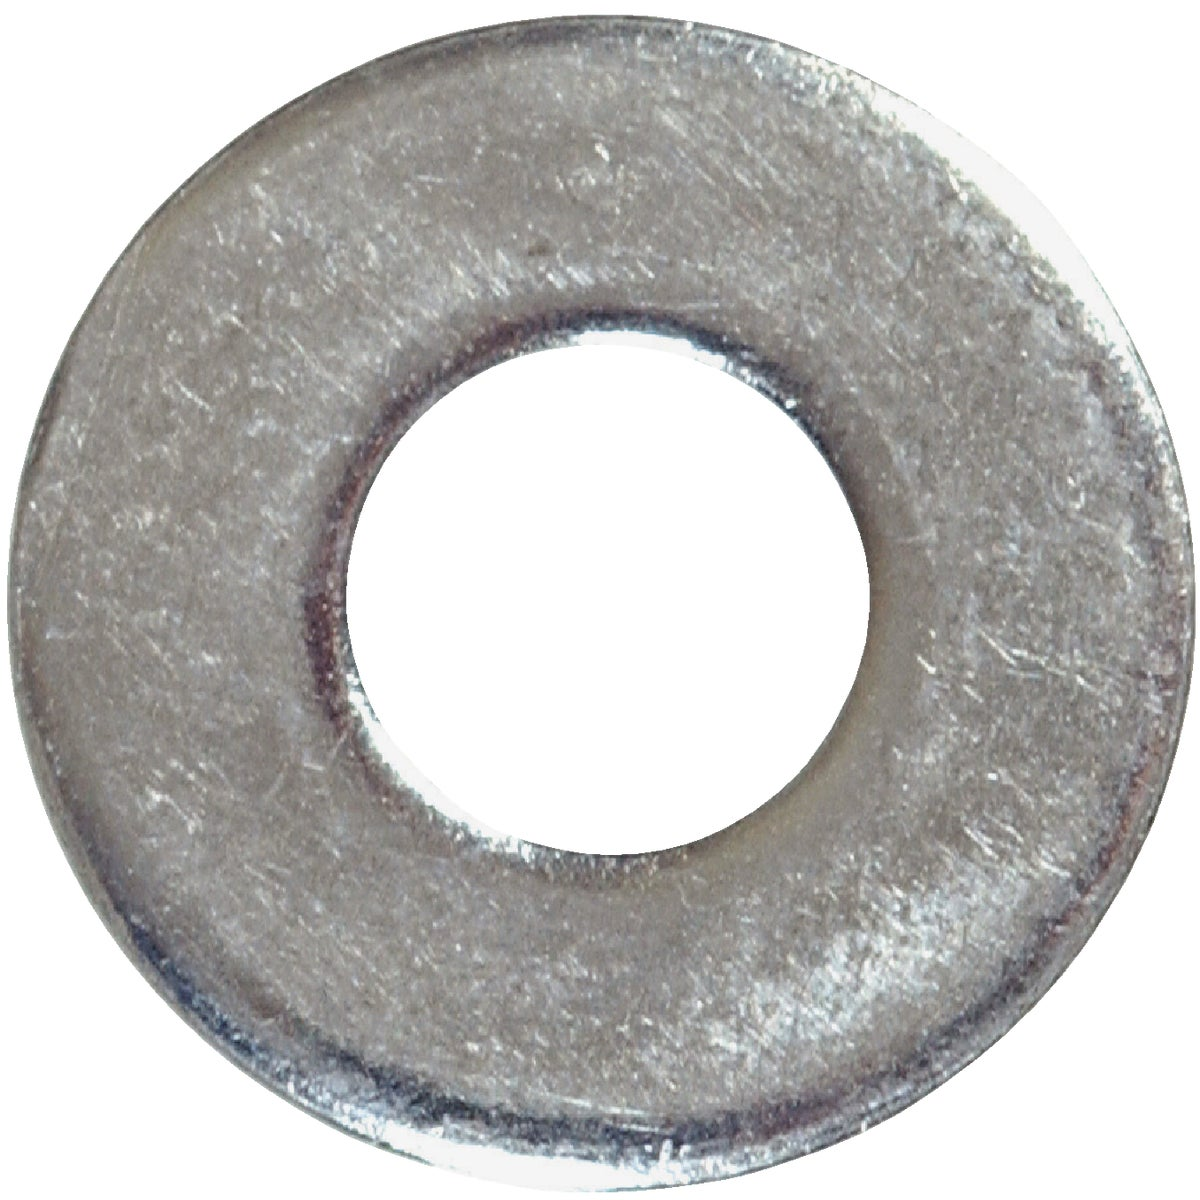 "100PC 5/16""USS FL WASHER - 270058 by Hillman Fastener"